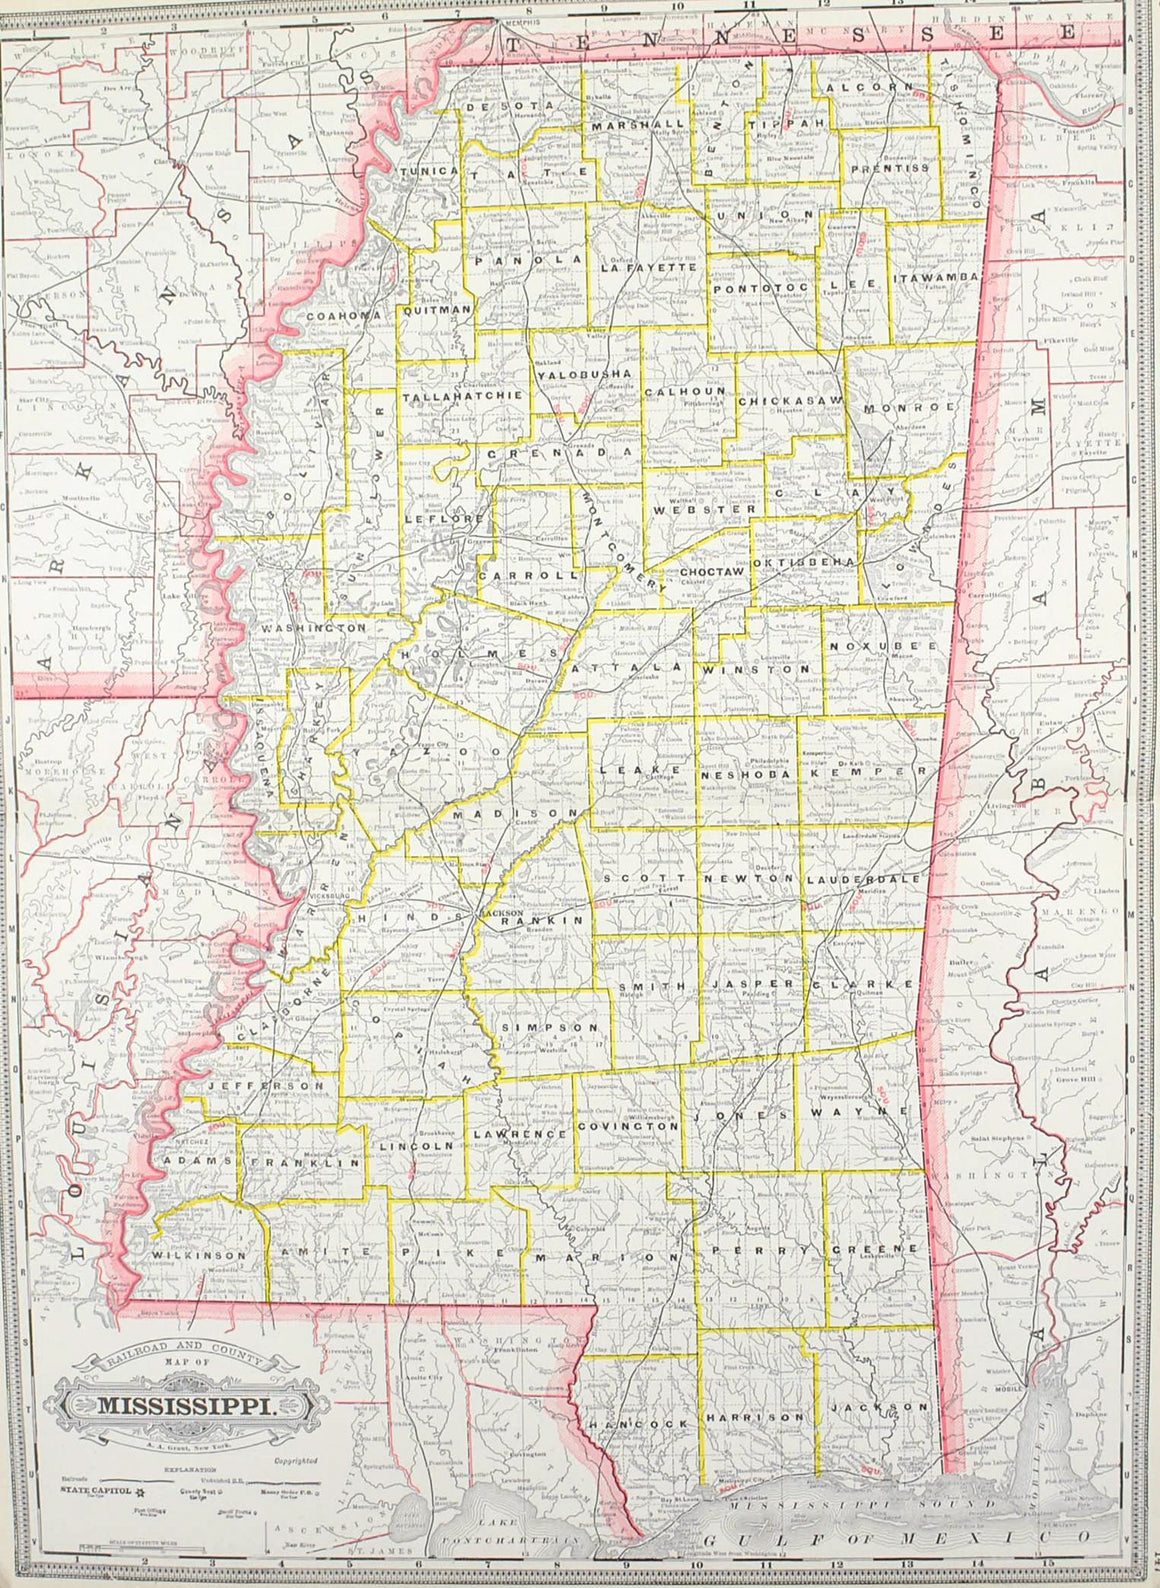 1887 Railroad and County Map of Mississippi